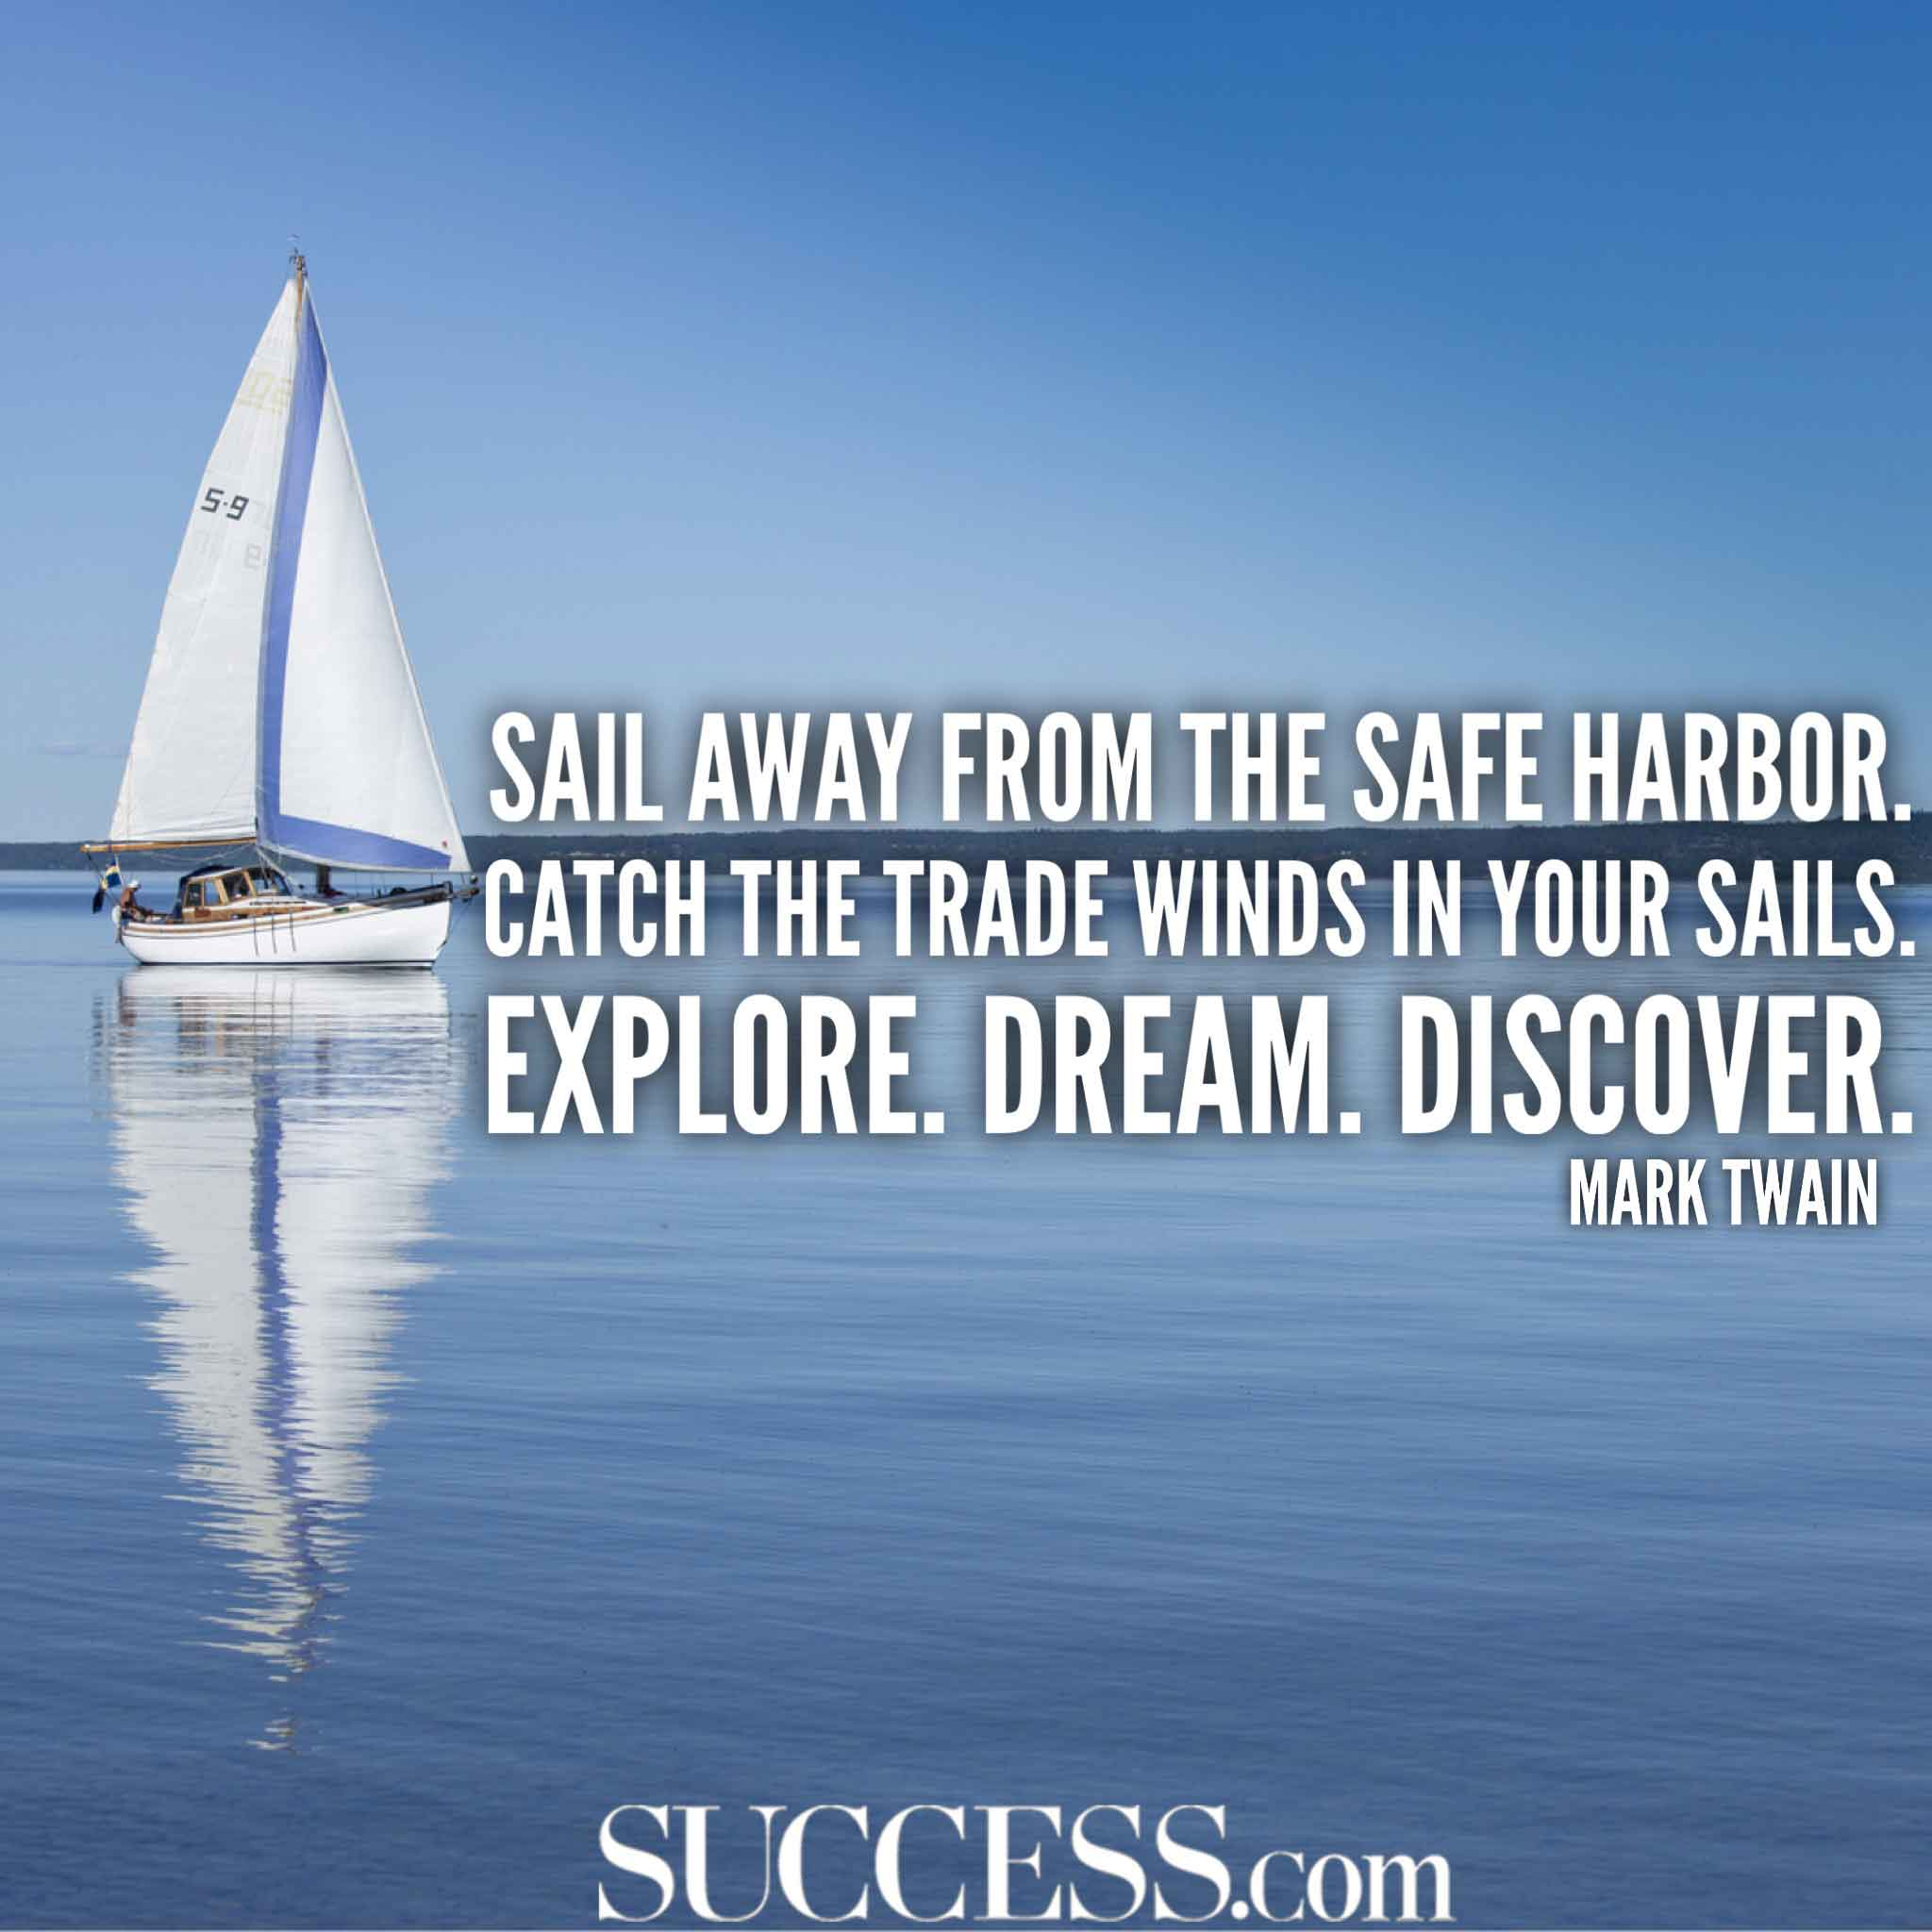 Sailing Inspirational Quotes: 15 Inspiring Quotes About Being A Dreamer